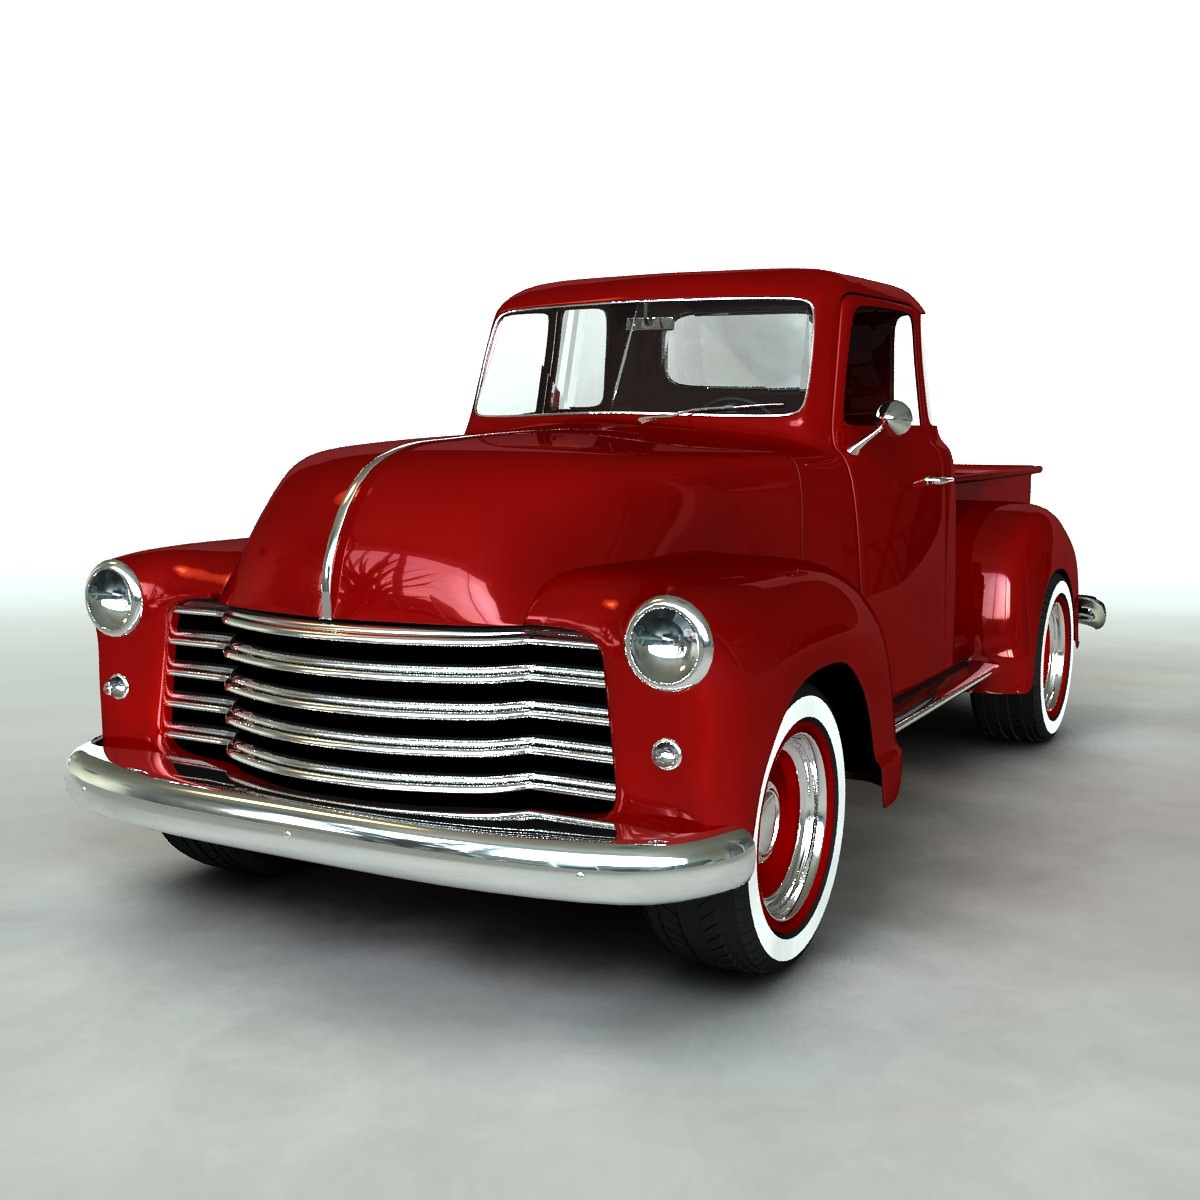 1951 chevy pickup 3d model obj. Black Bedroom Furniture Sets. Home Design Ideas